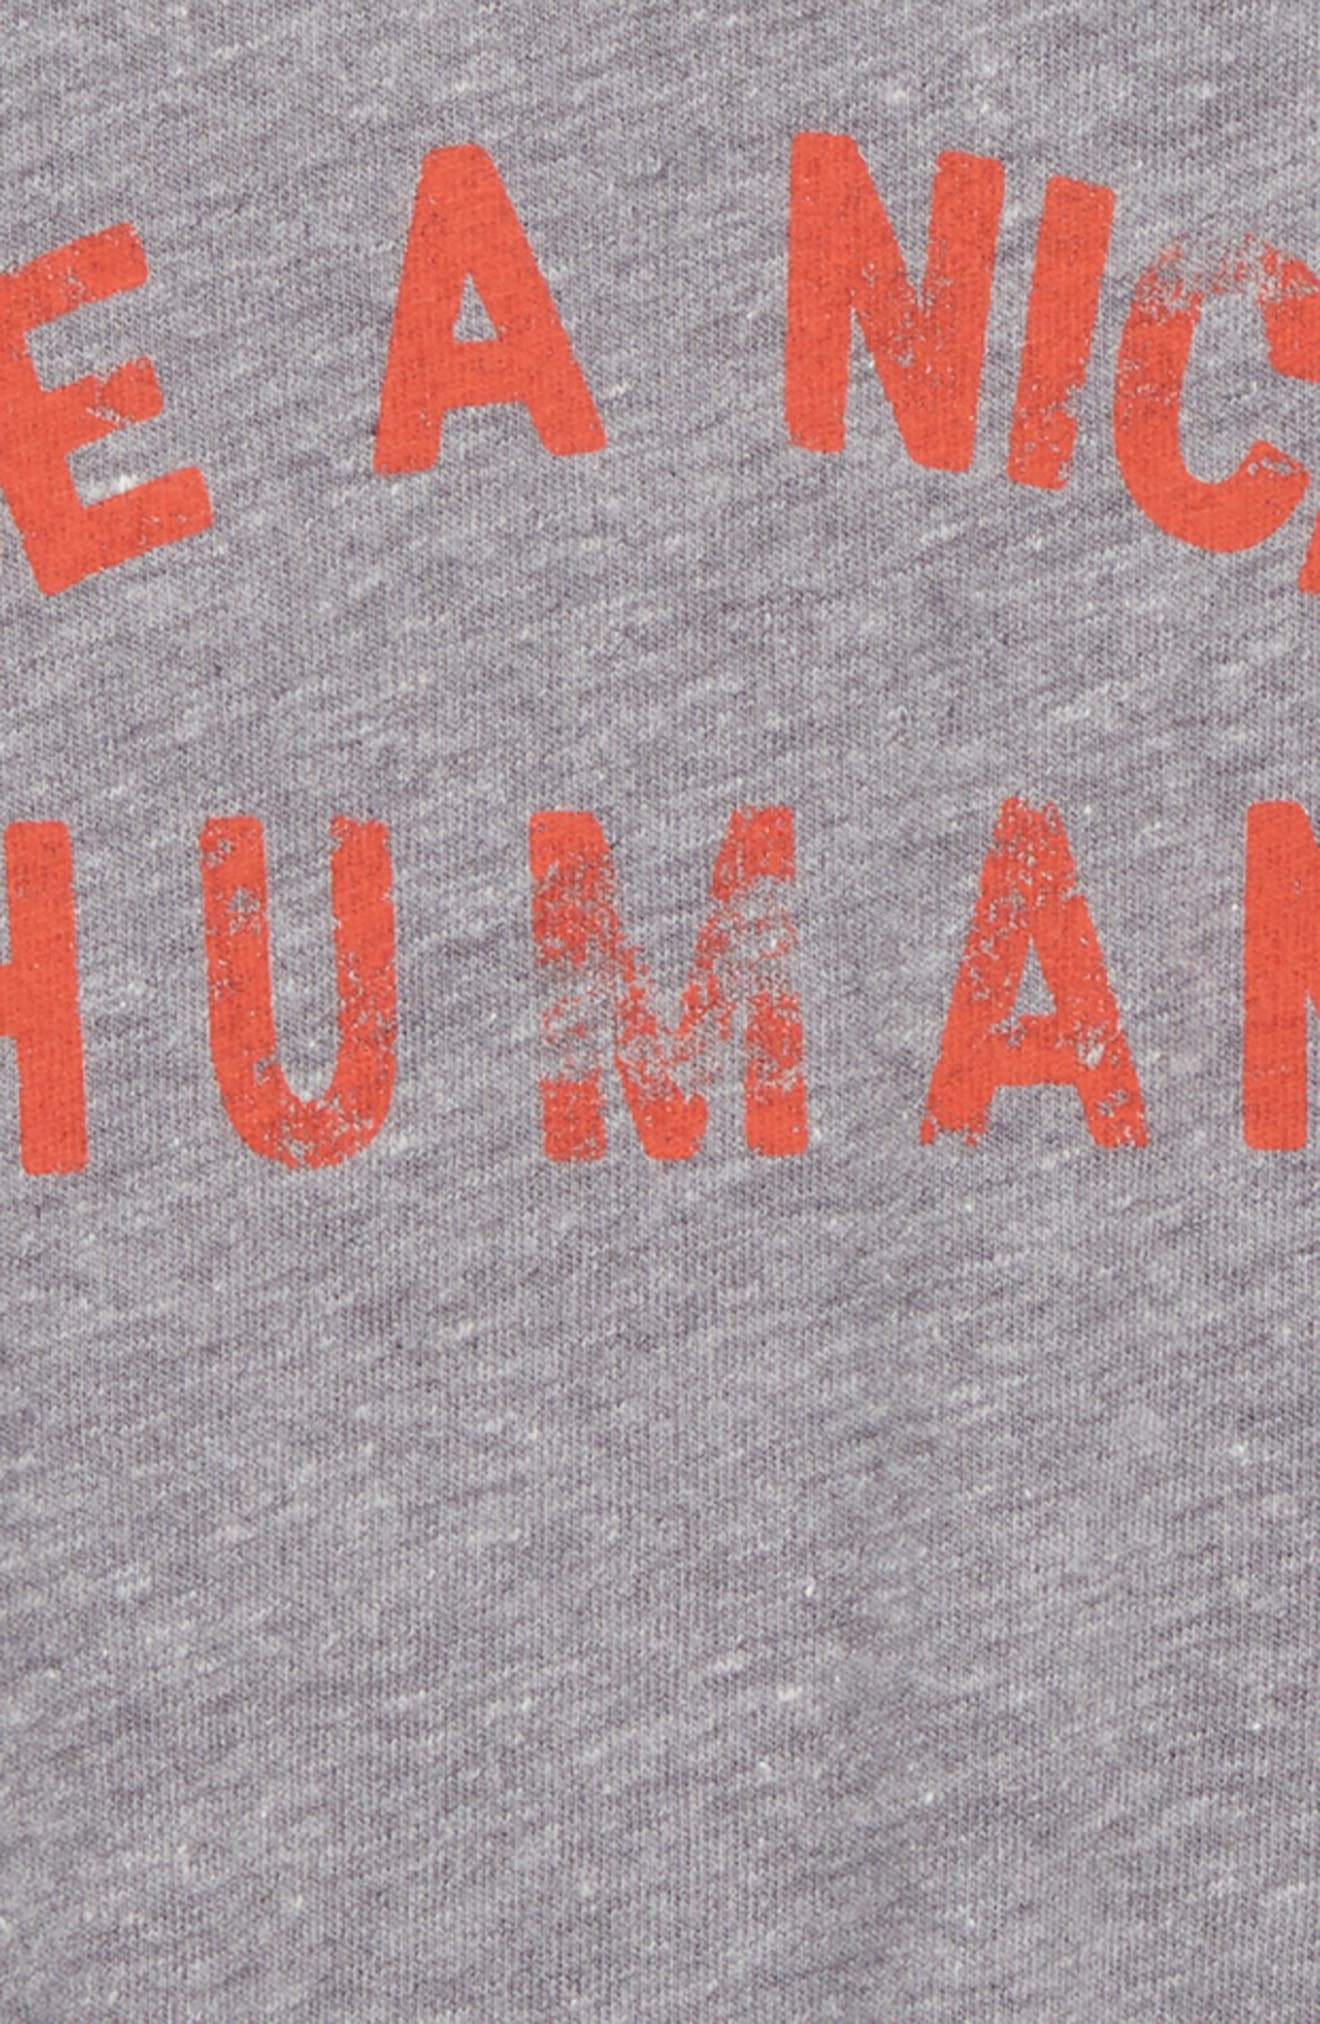 Be A Nice Human Tee,                             Alternate thumbnail 2, color,                             020